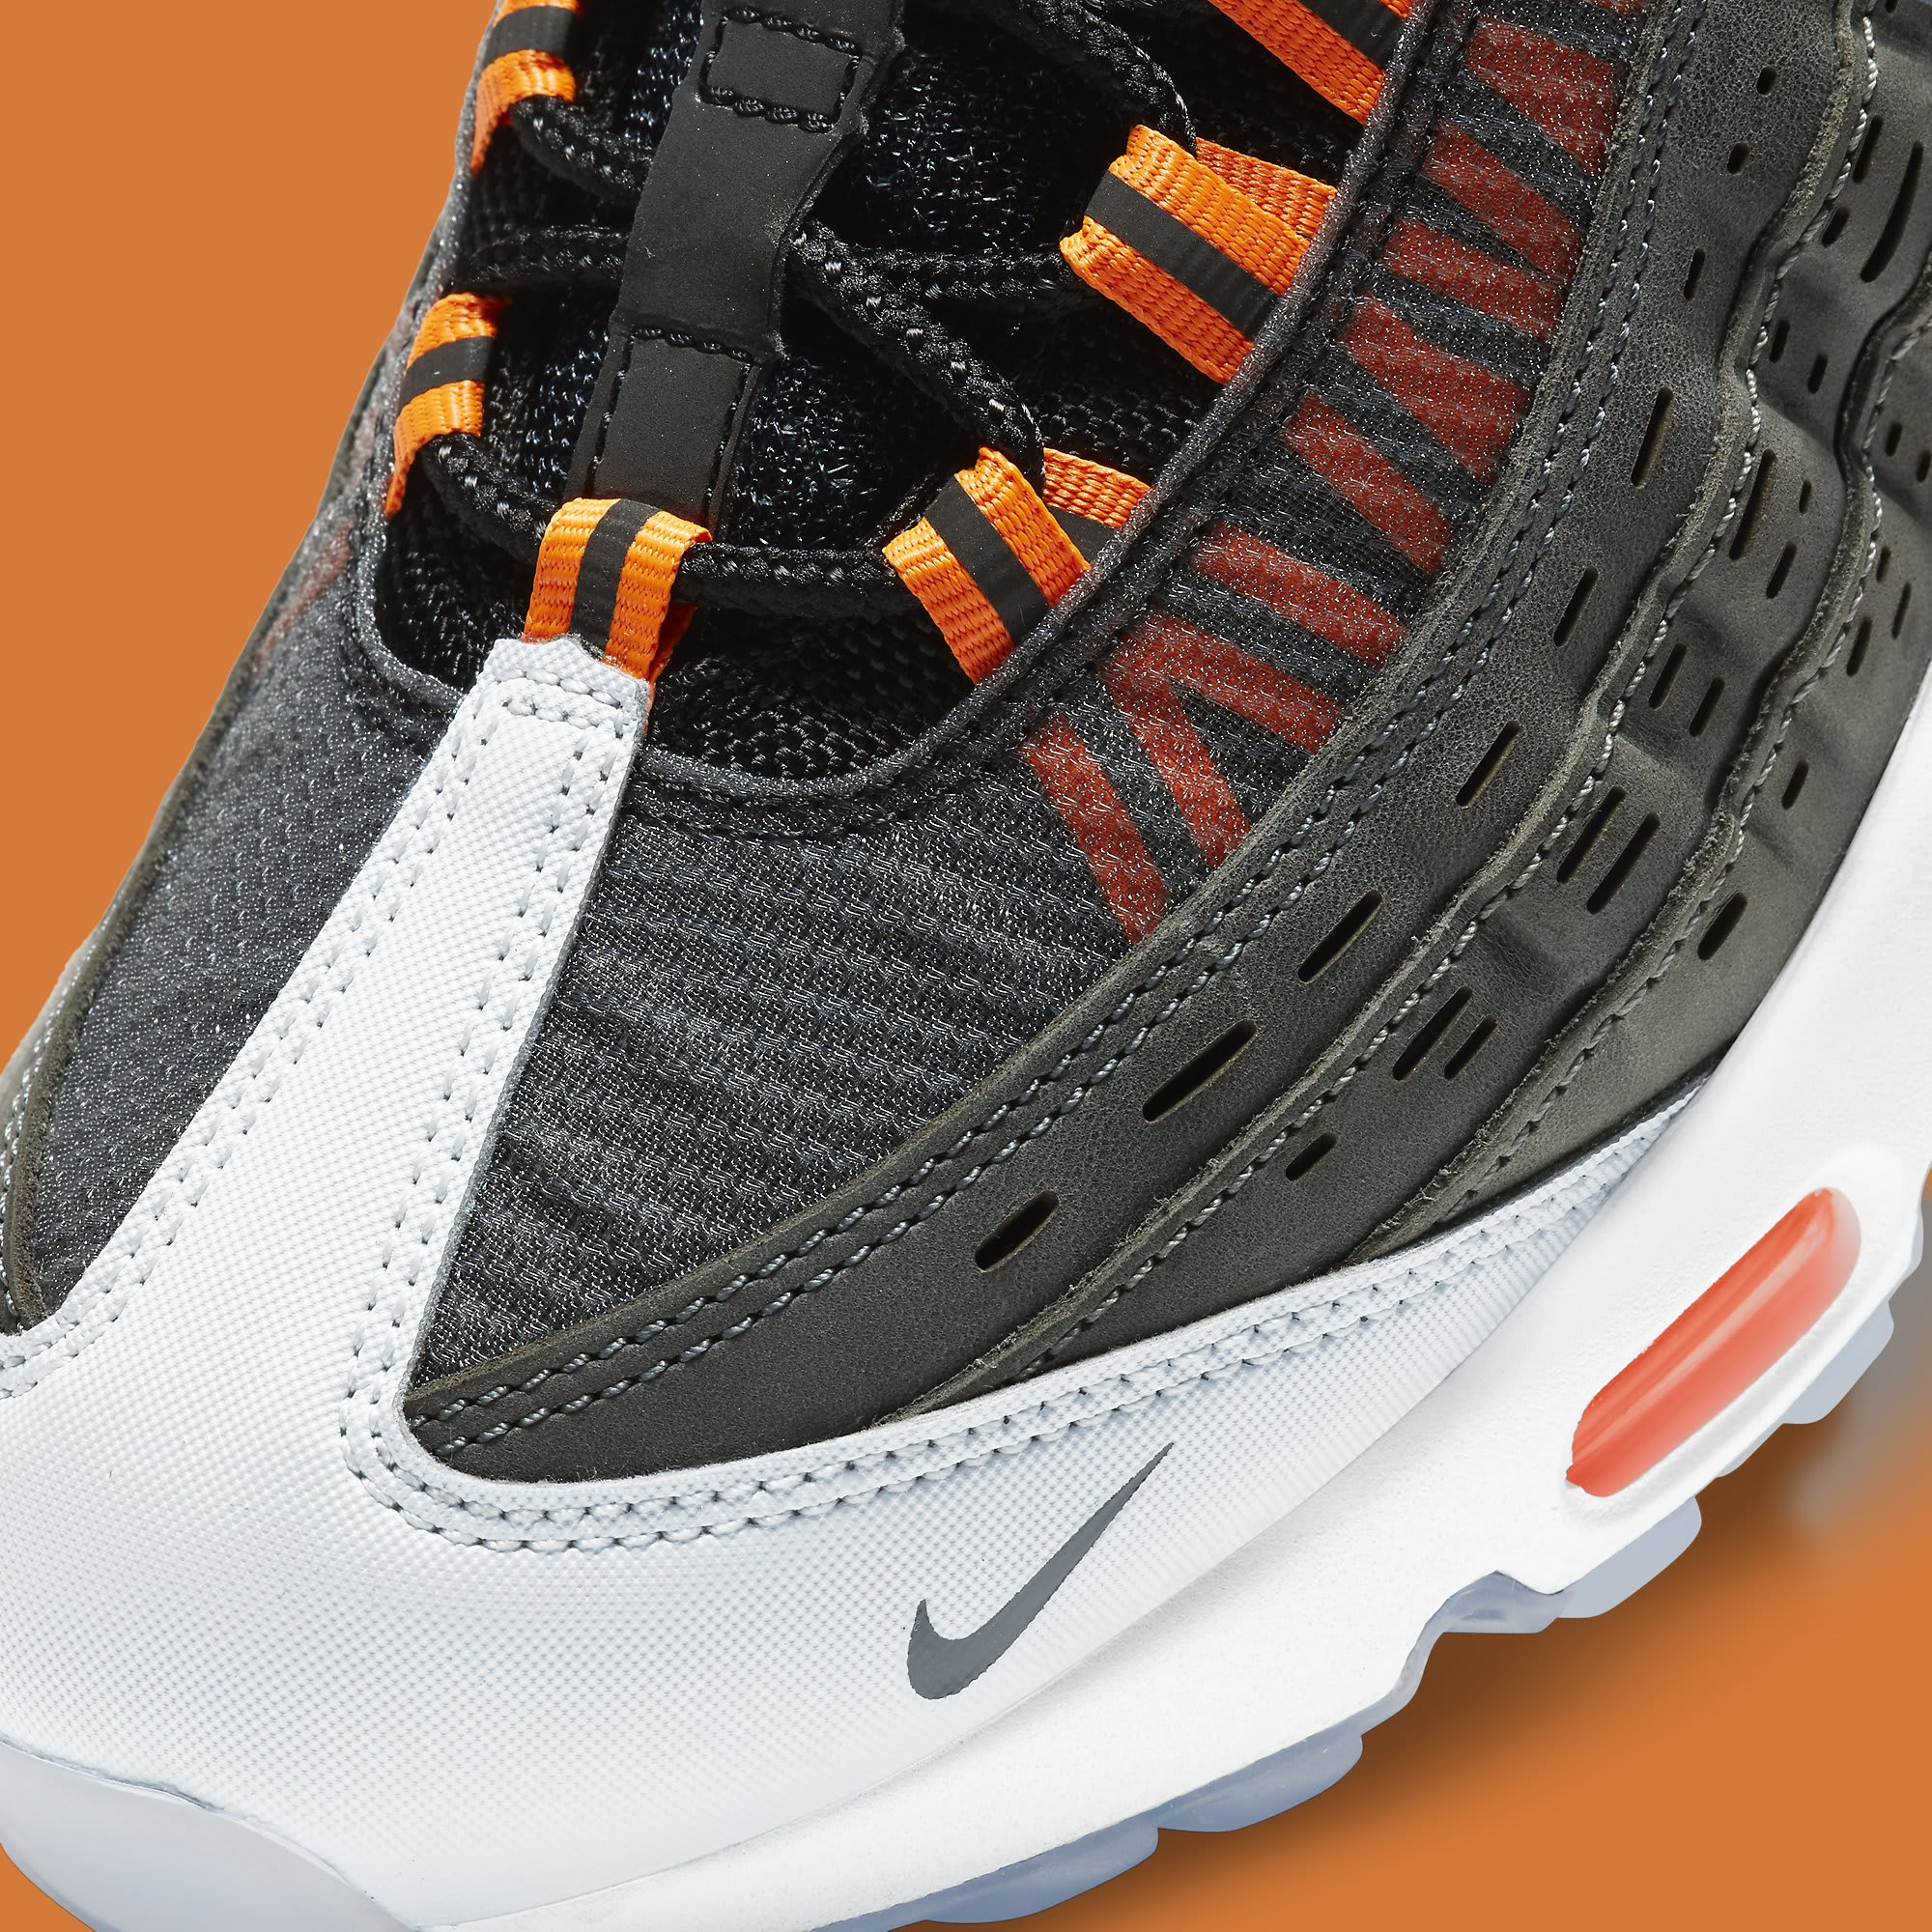 Kim Jones x Nike Air Max 95 Orange Release Date DD1871-001 Toe Detail